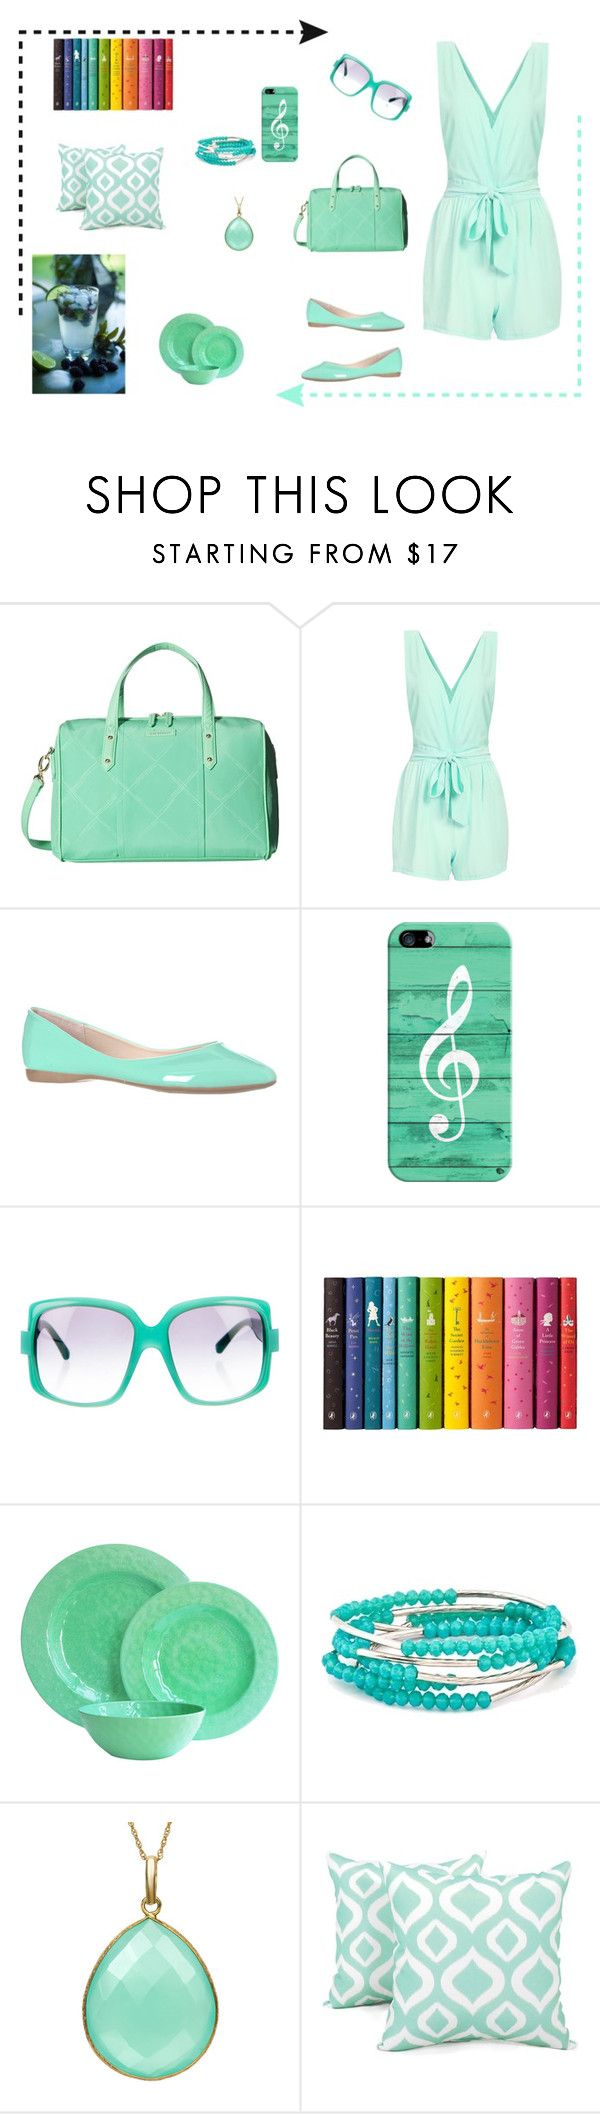 """Light Blue theme"" by anja264 ❤ liked on Polyvore featuring Vera Bradley, Casetify, Christian Dior, Jay Import, Disney, Chrysalis and Arlee Home Fashions"